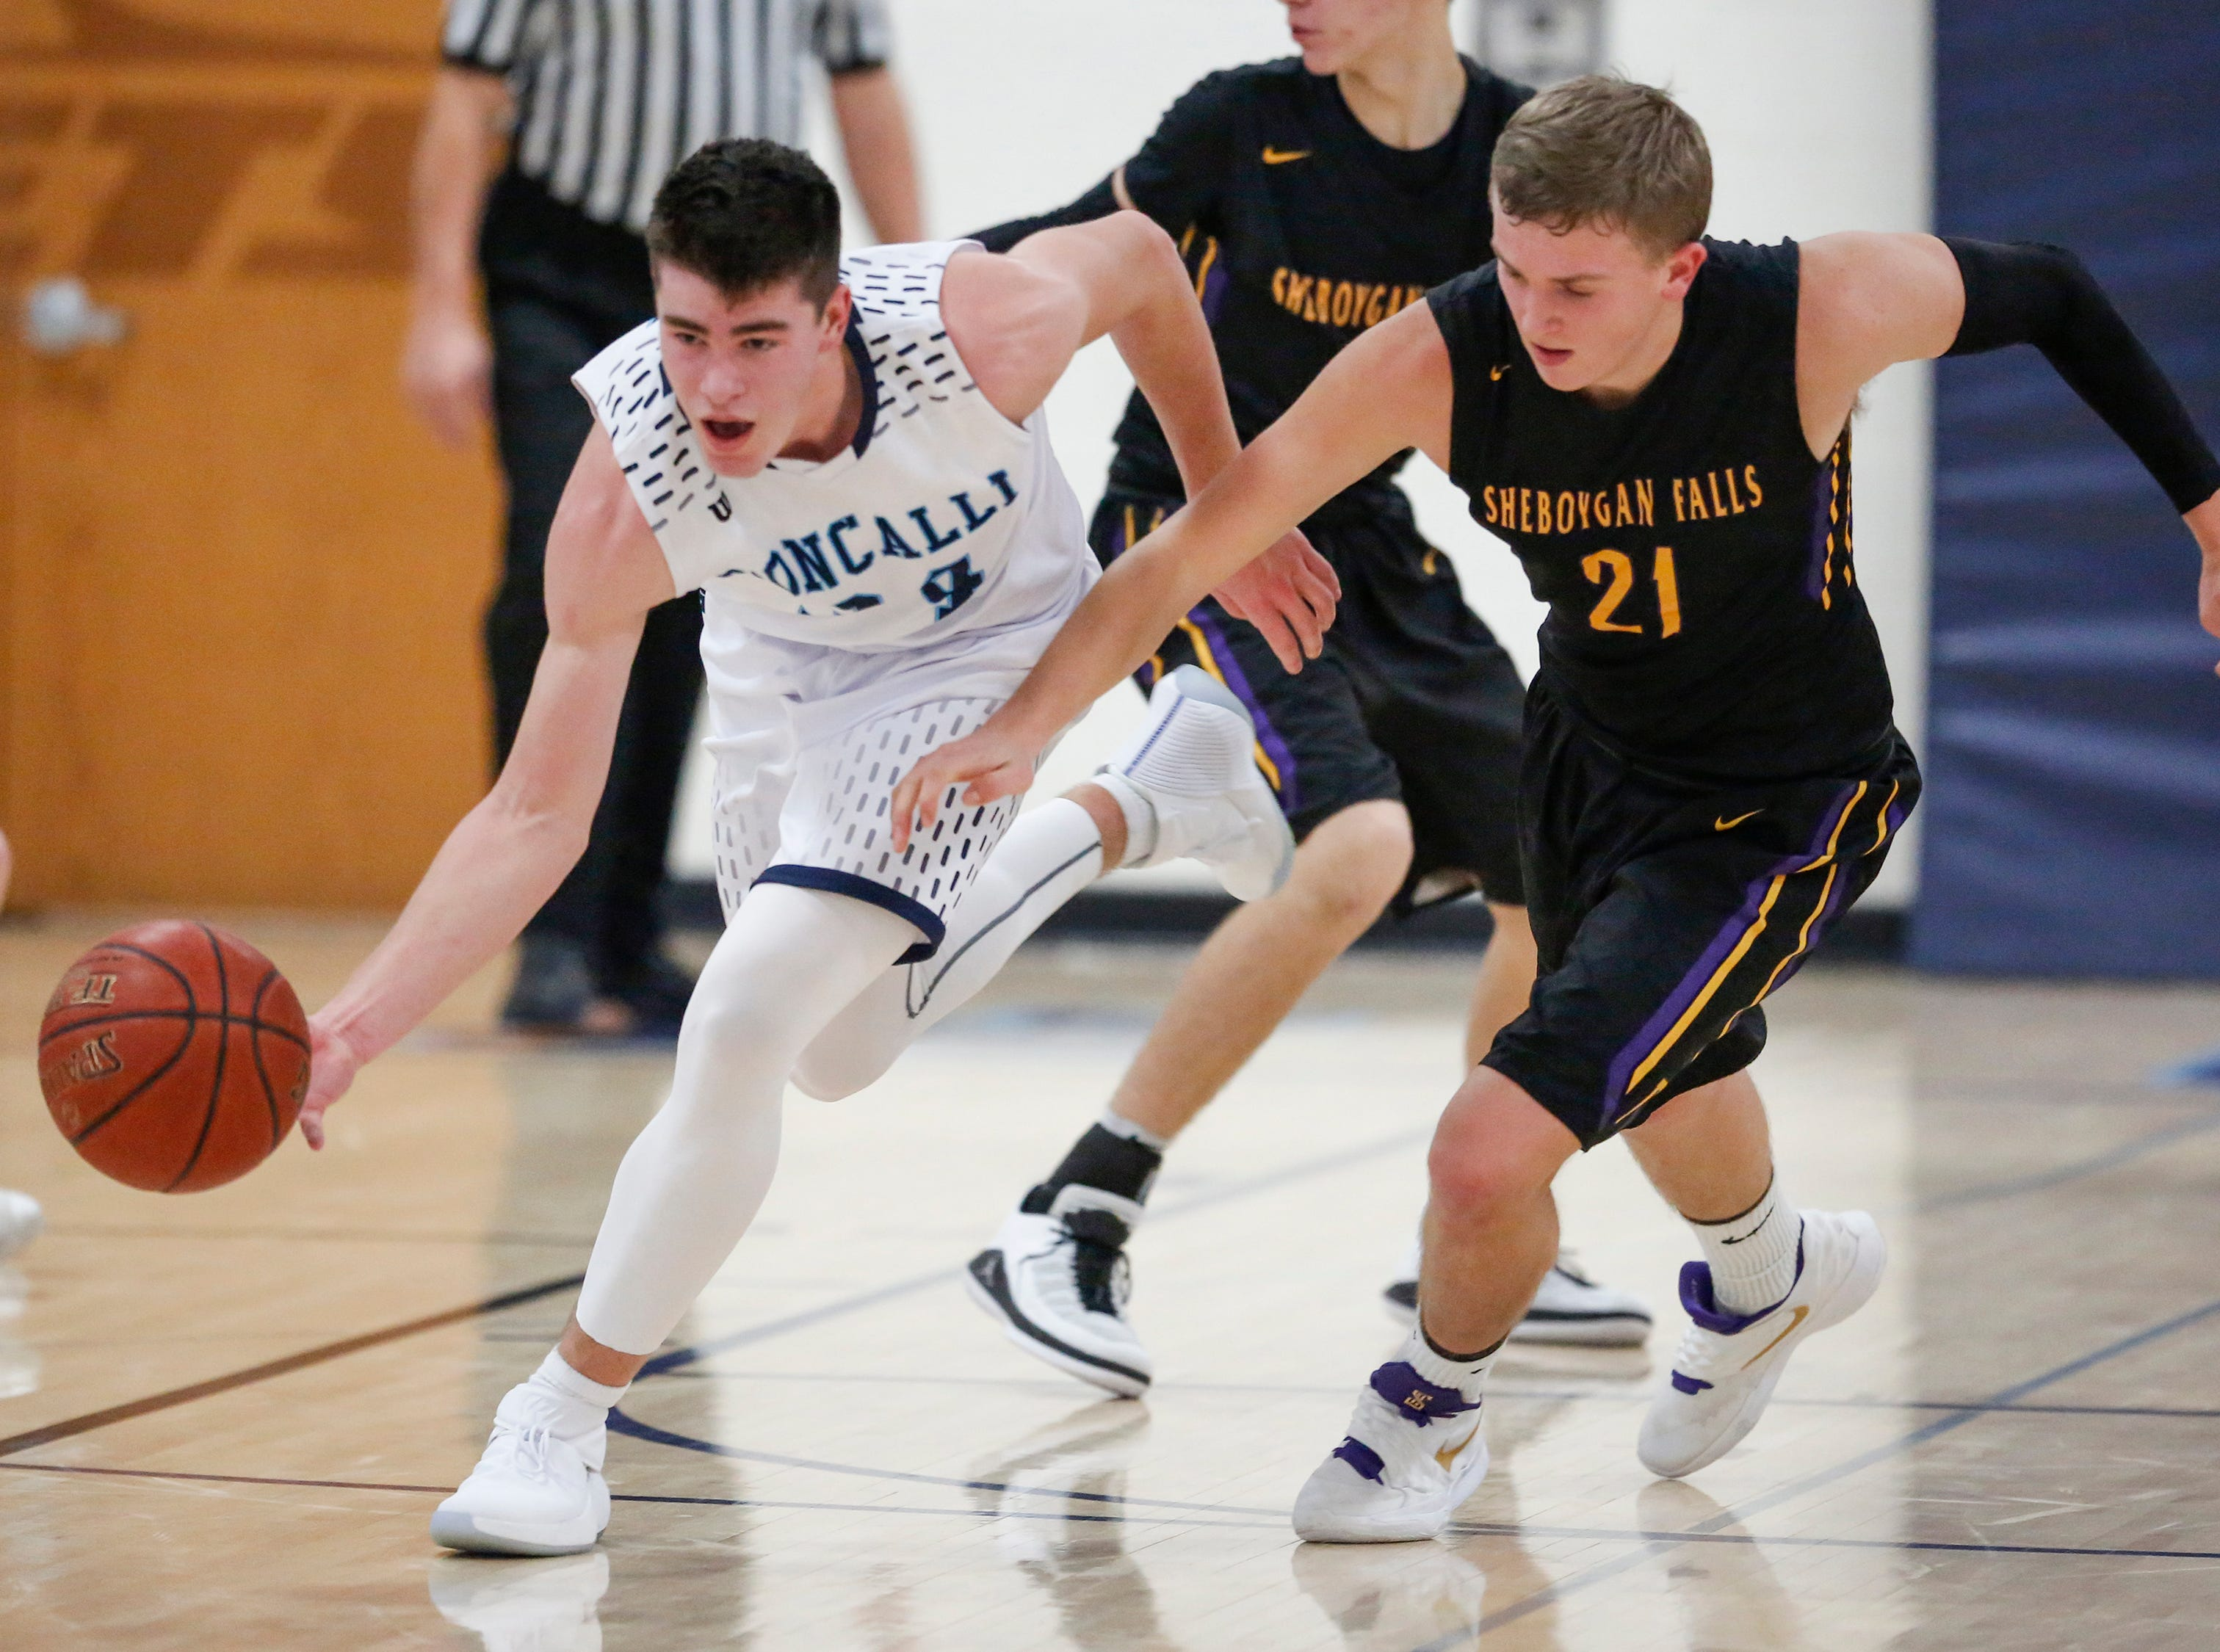 Roncalli's Ian Behringer (34) steals the ball from Sheboygan Falls's Connor Spielvogel during an EWC matchup at Roncalli High School Thursday, January 10, 2019, in Manitowoc, Wis. Joshua Clark/USA TODAY NETWORK-Wisconsin